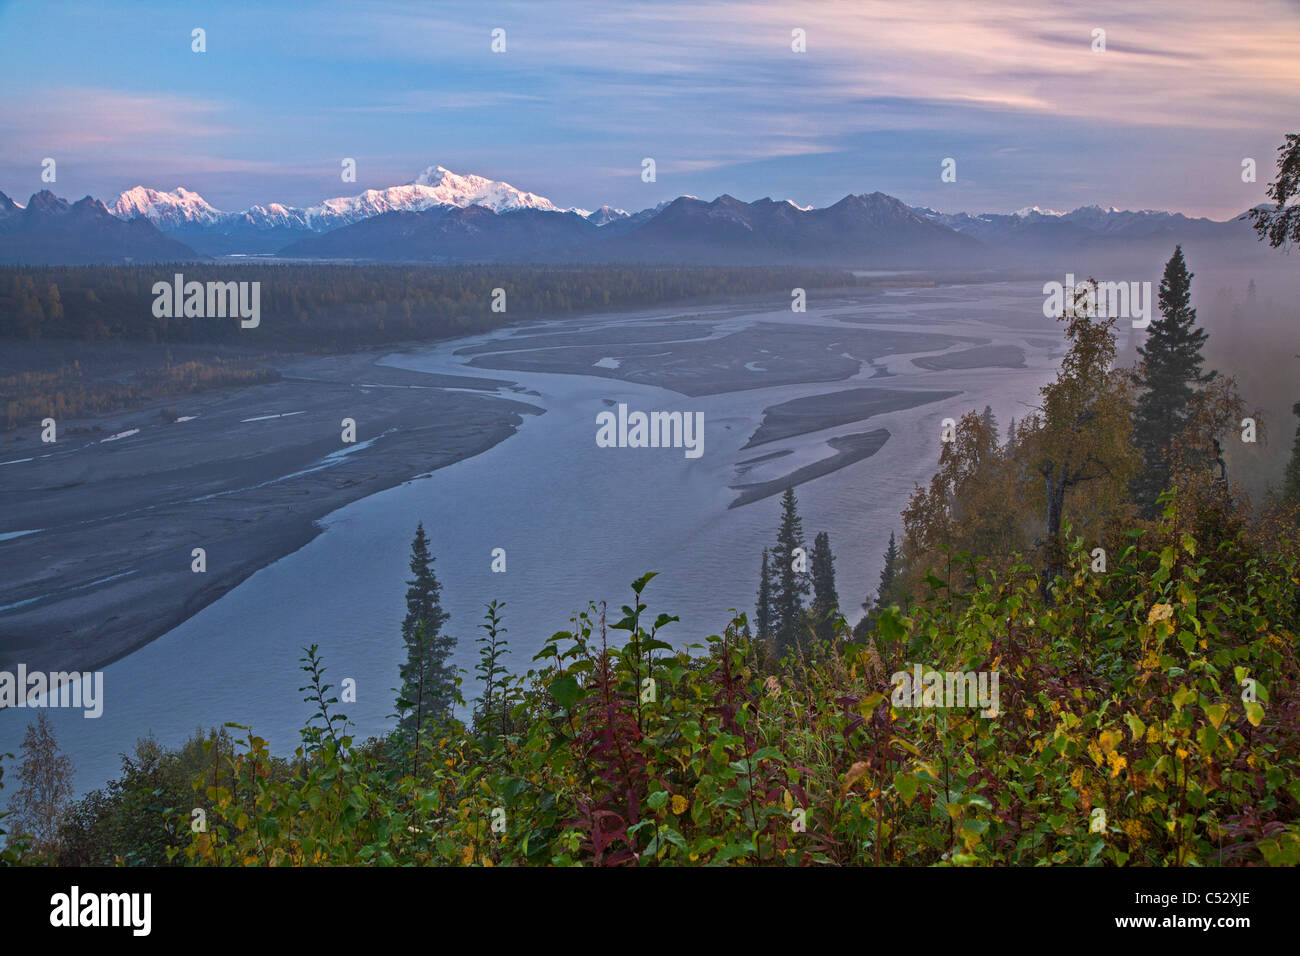 Scenic southside view of Mt. Mckinley, Alaska Range and the Chulitna River at sunset from the George Parks Highway, - Stock Image